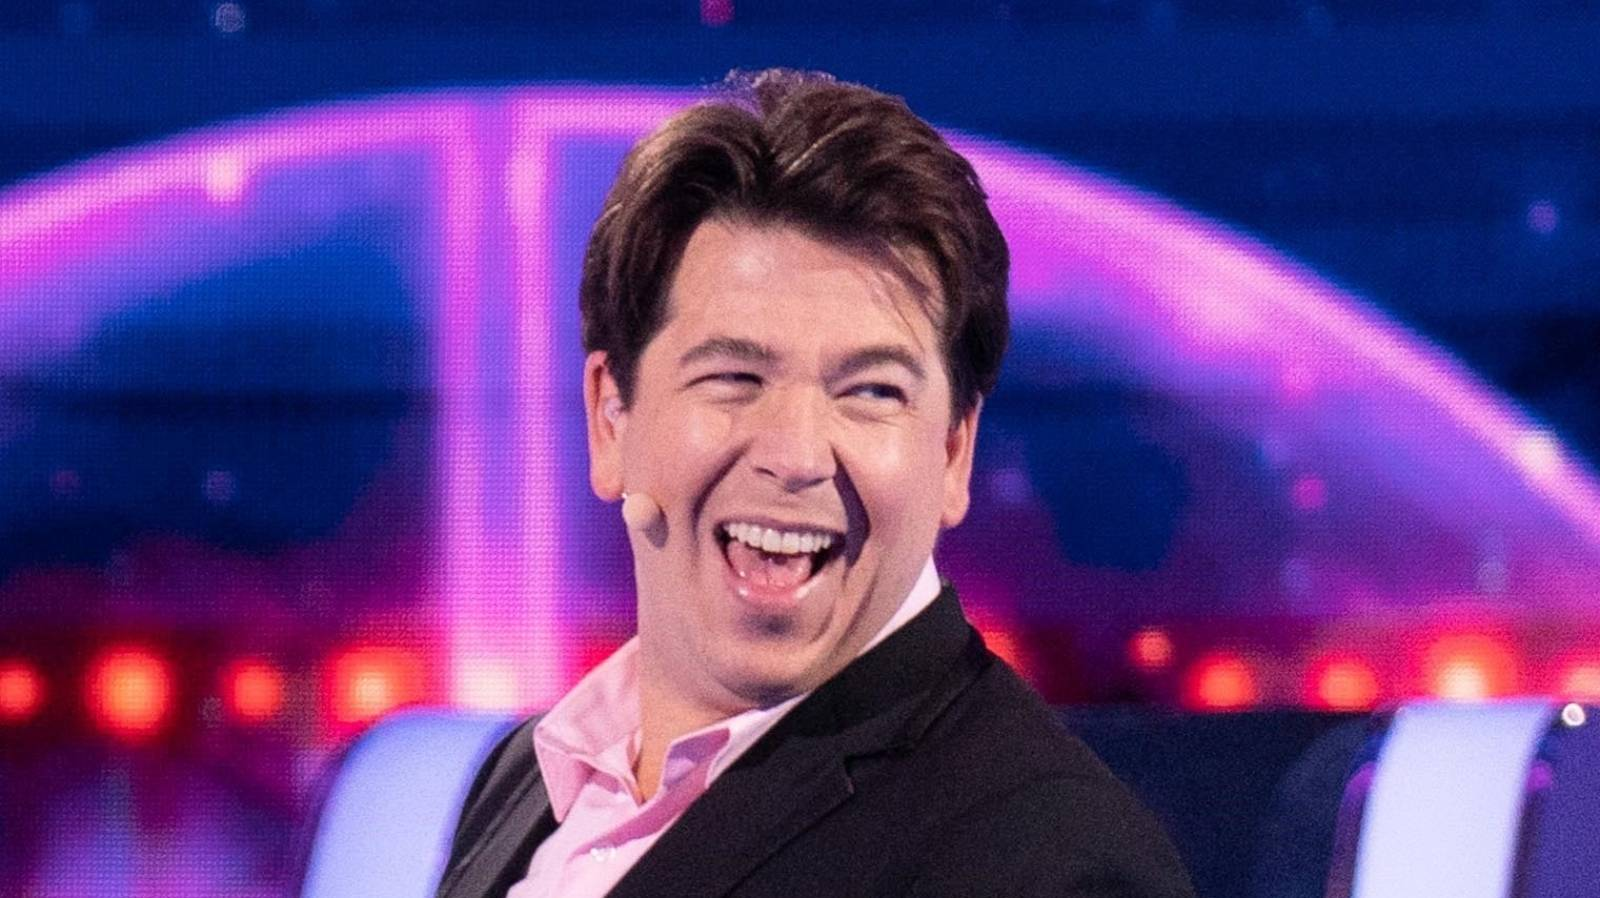 Michael McIntyre in circle of hell posing as a game show